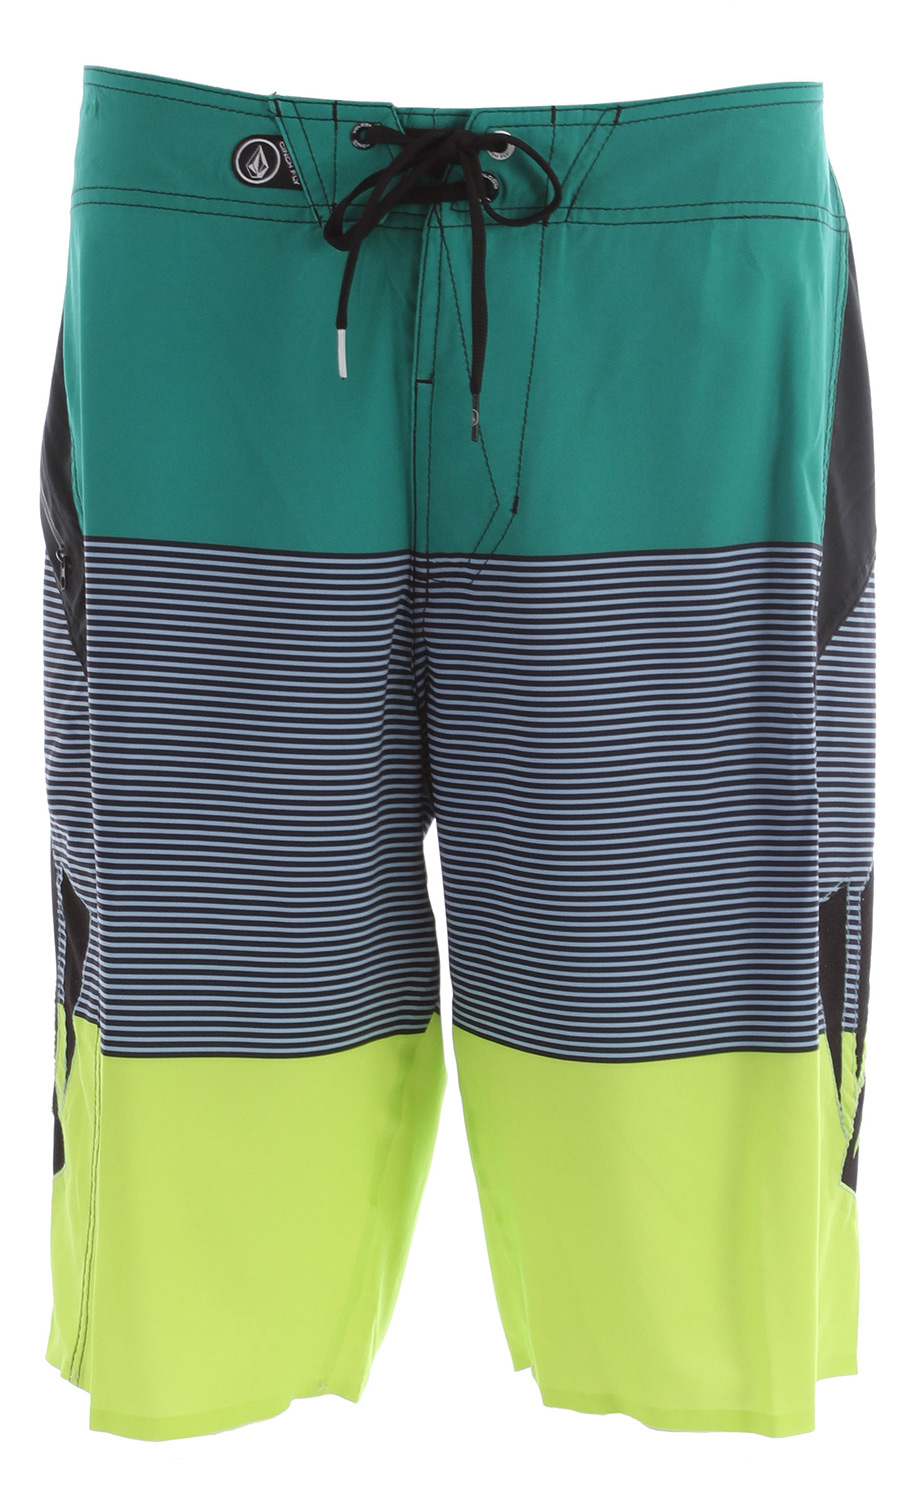 "Surf Key Features of the Volcom Annihilator Blakey Boardshorts: 21"" outseam boardshort Volcom 4 way stretch Ultra light 4 way stretch with water repellant treatment Welded inseam and welded stretch hem Zip pocket Cinch Fly Technology 85% polyester/15% elastane 4 way stretch with DWR - $45.95"